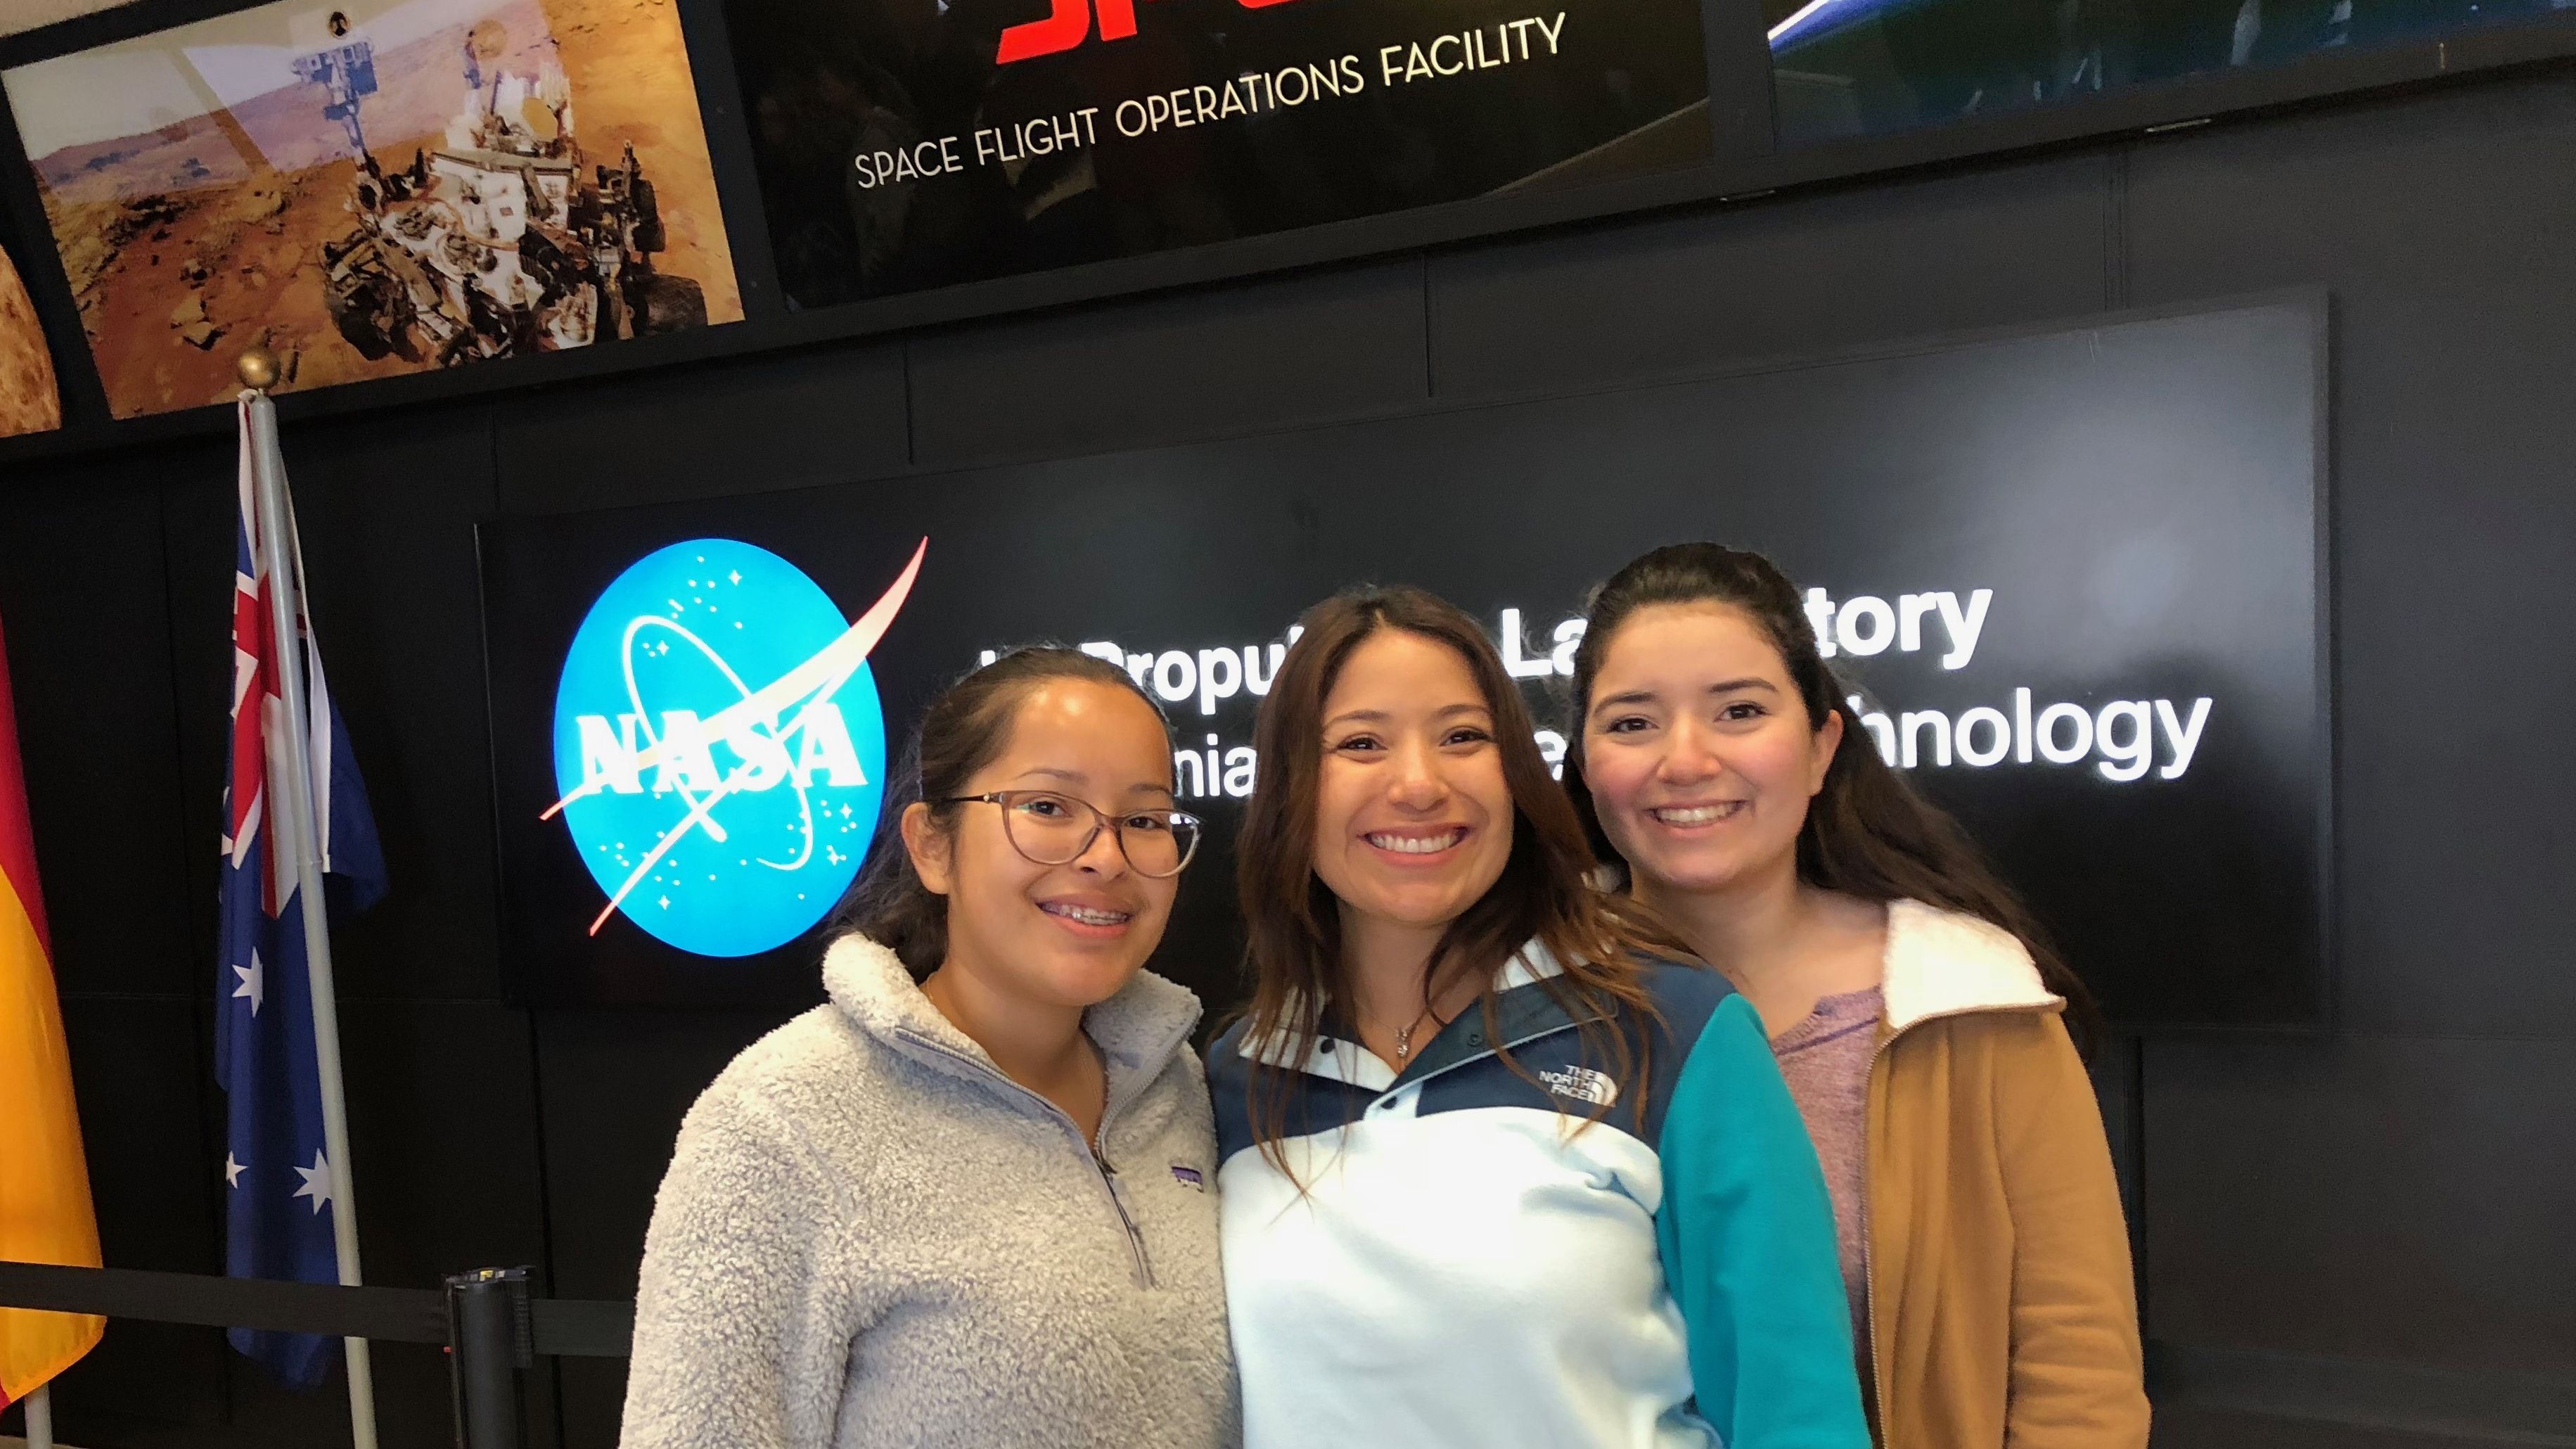 Rebecca and her mom and sister pose for a photo in the lobby of JPL's mission control with NASA/JPL logo behind them.